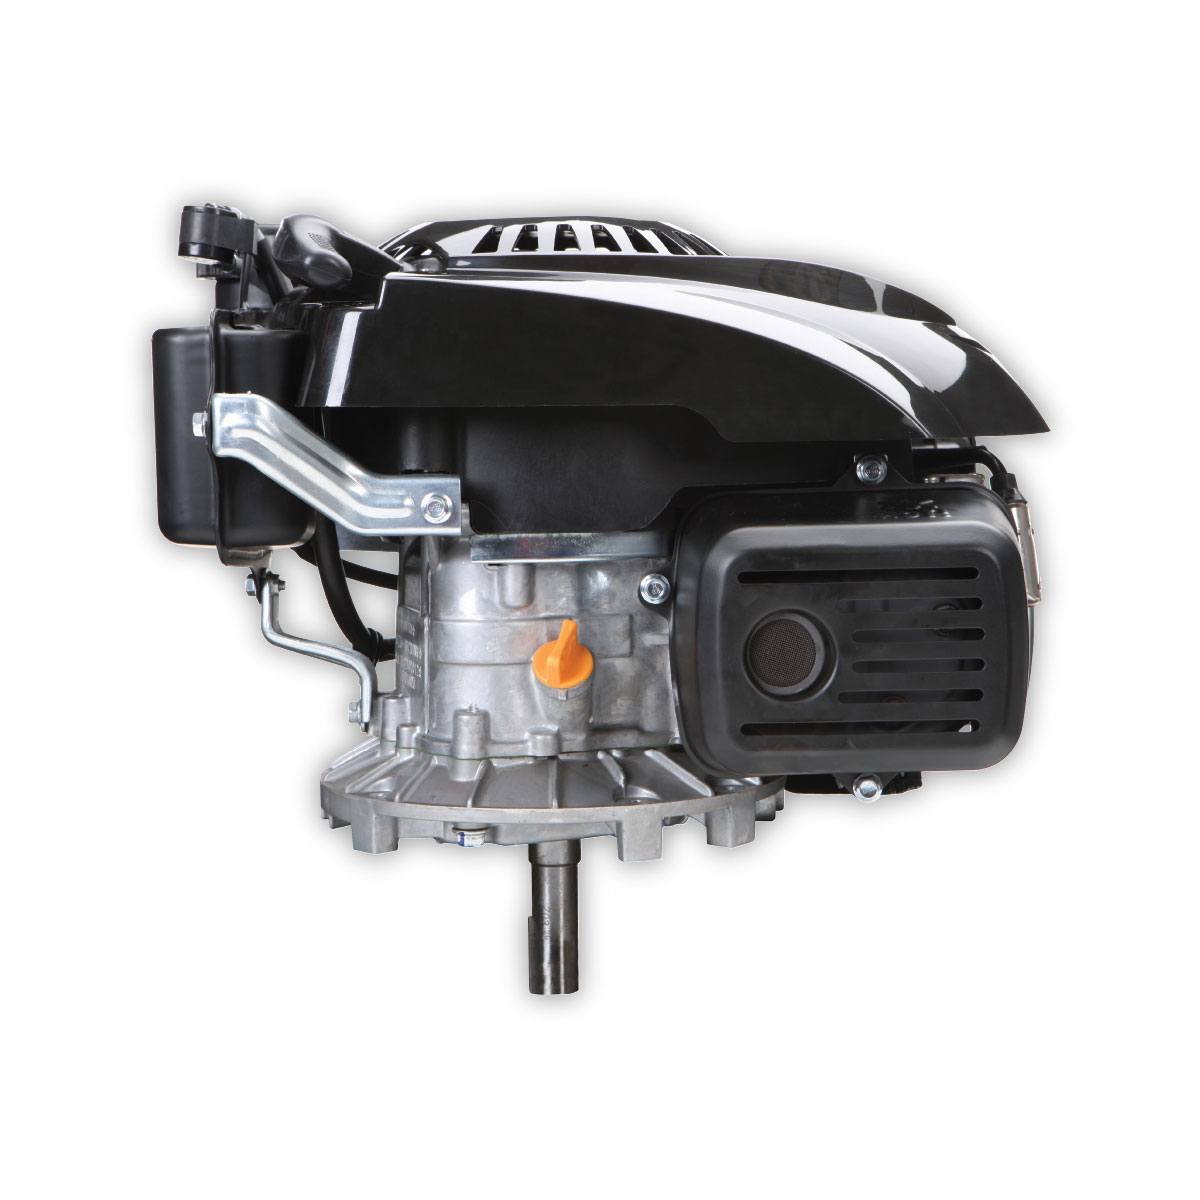 Nifty Hp Ohv Vertical Shaft Gas Engine Carb Who Makes Harbor Freight Predator Engines houzz 01 Who Makes Harbor Freight Predator Engines